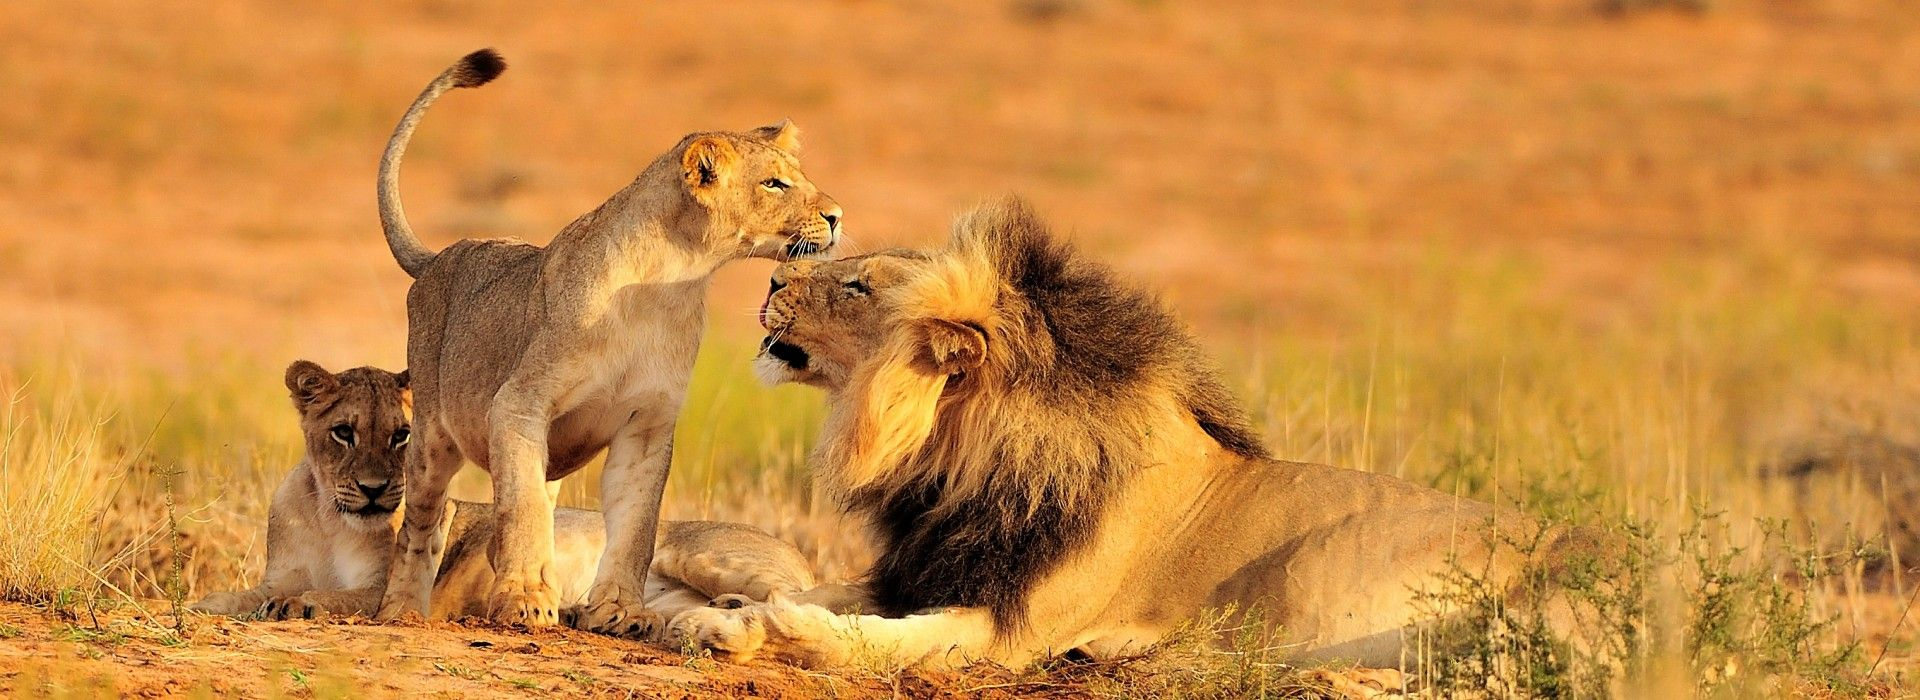 Air tours, road trips and transfers in Kruger National Park